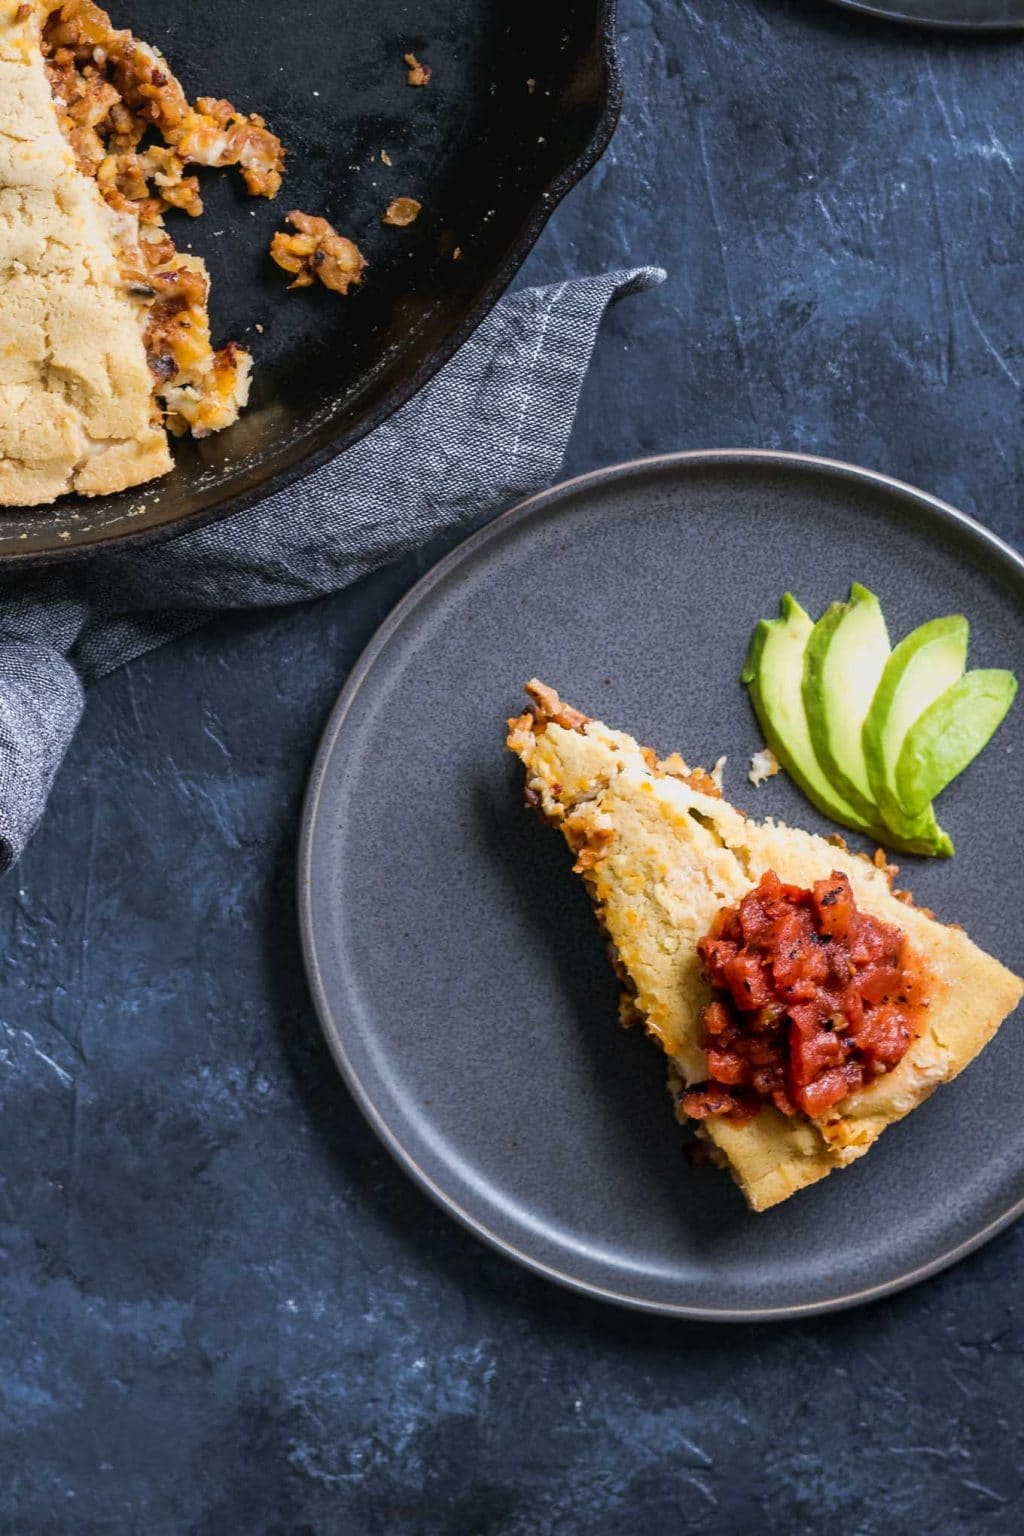 Slice of tamale skillet pie served on a plate with avocado and some tomato salsa